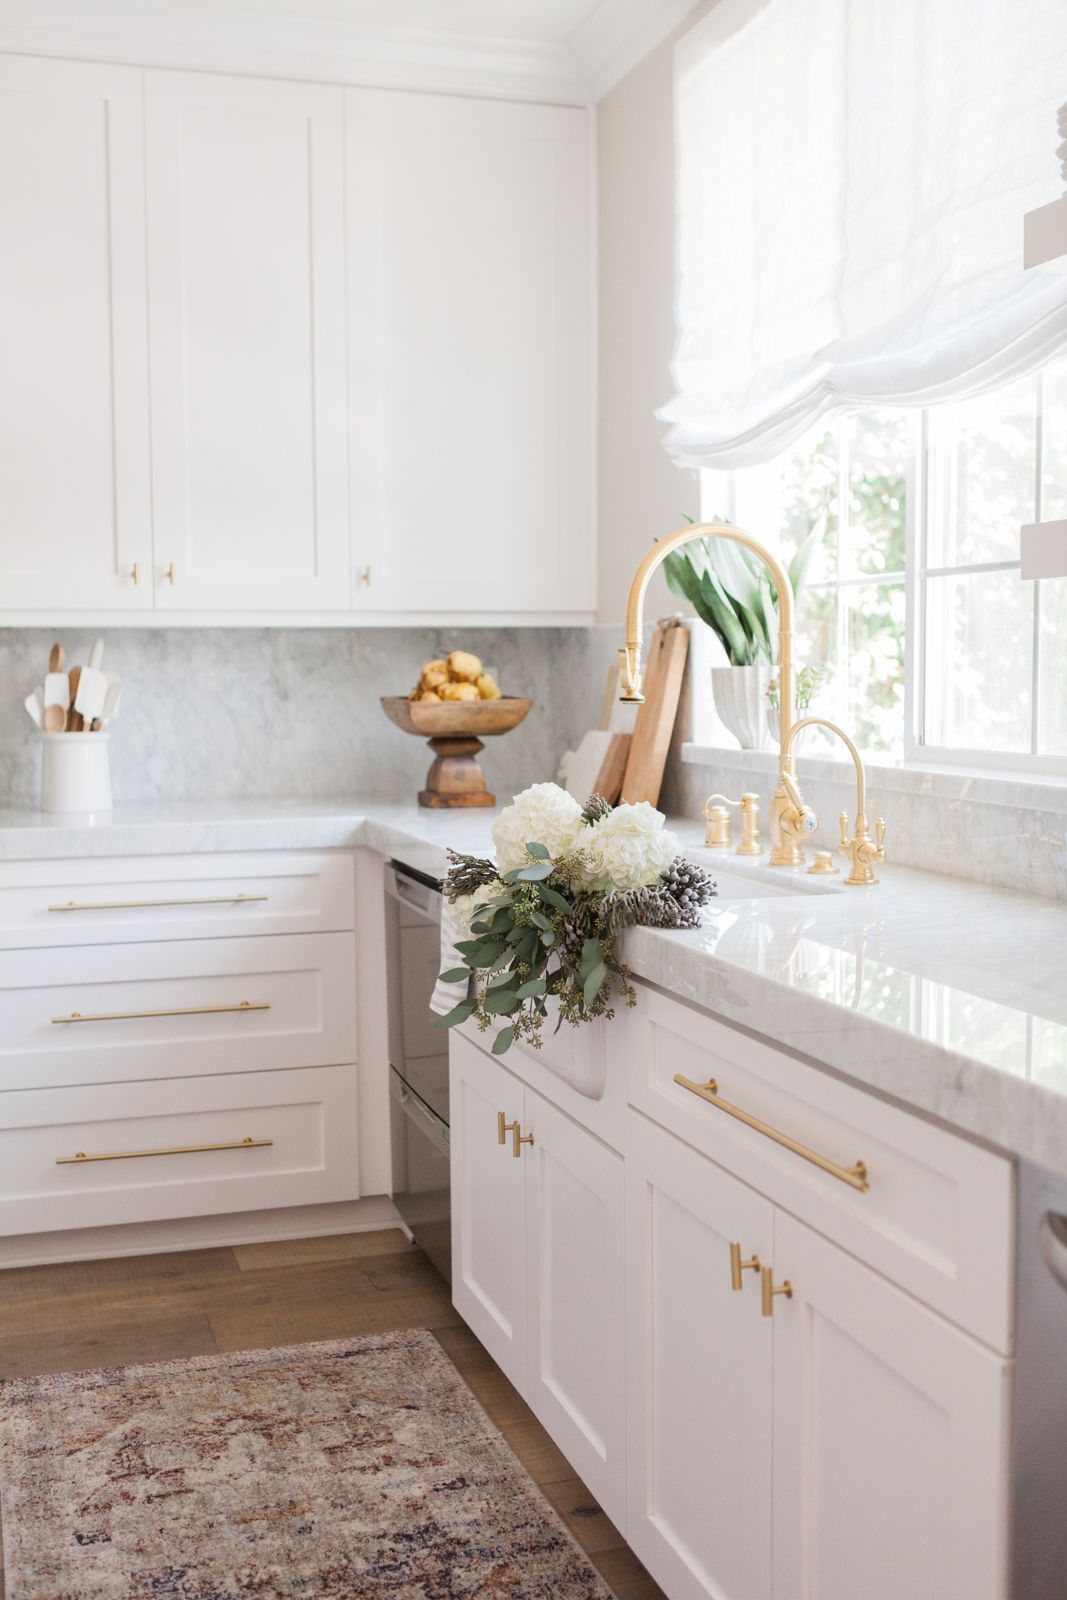 White And Gold Kitchen Image Via Lemon Stripes White Kitchen Design Kitchen Design Home Kitchens